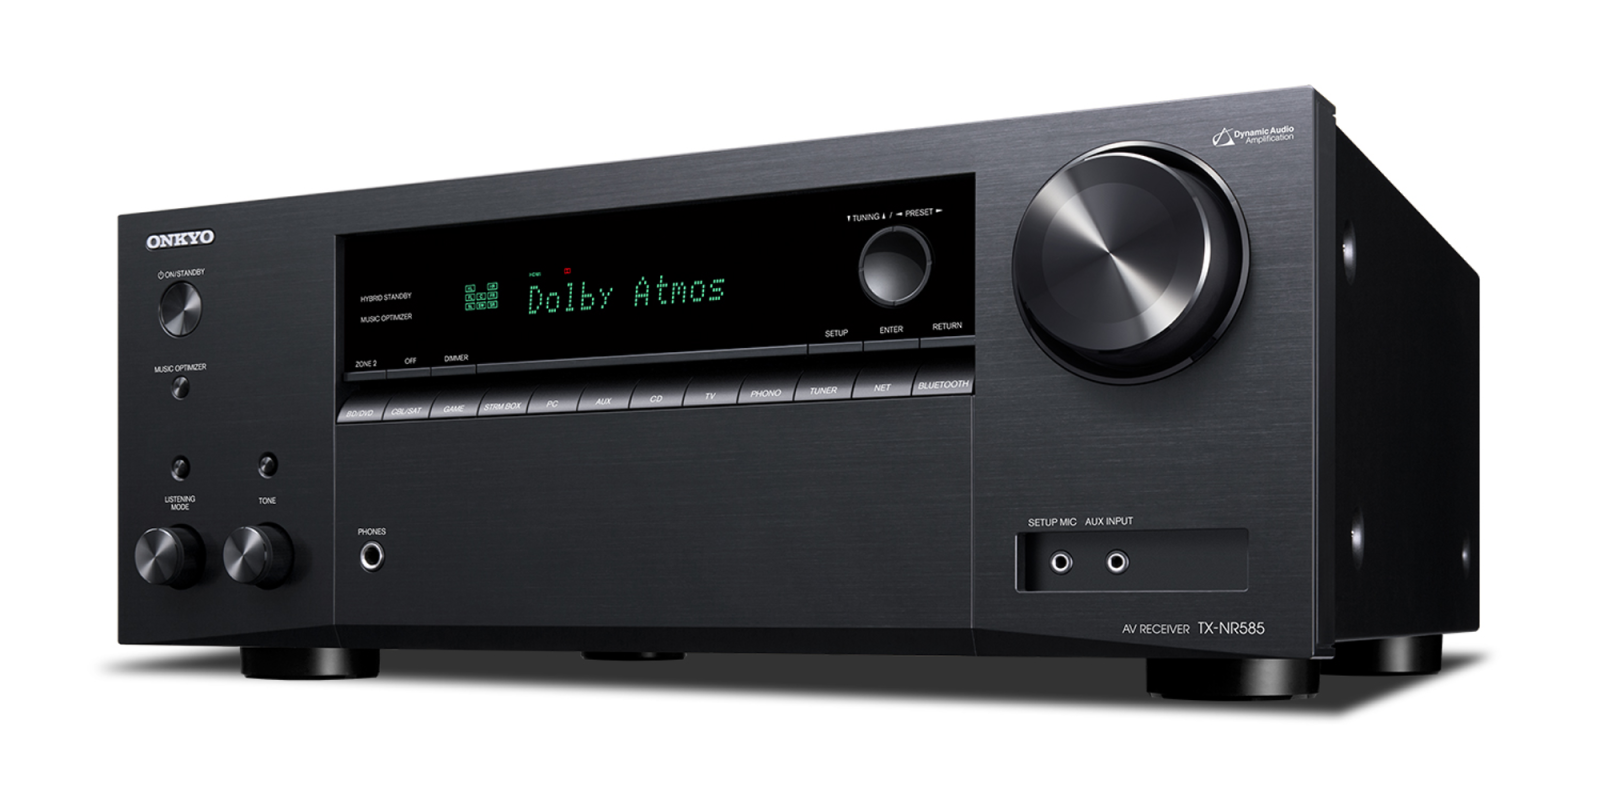 Onkyo's 7.2-Ch. AirPlay & 4K Dolby Vision A/V receiver w/ gift card is down to $289 ($365 value)